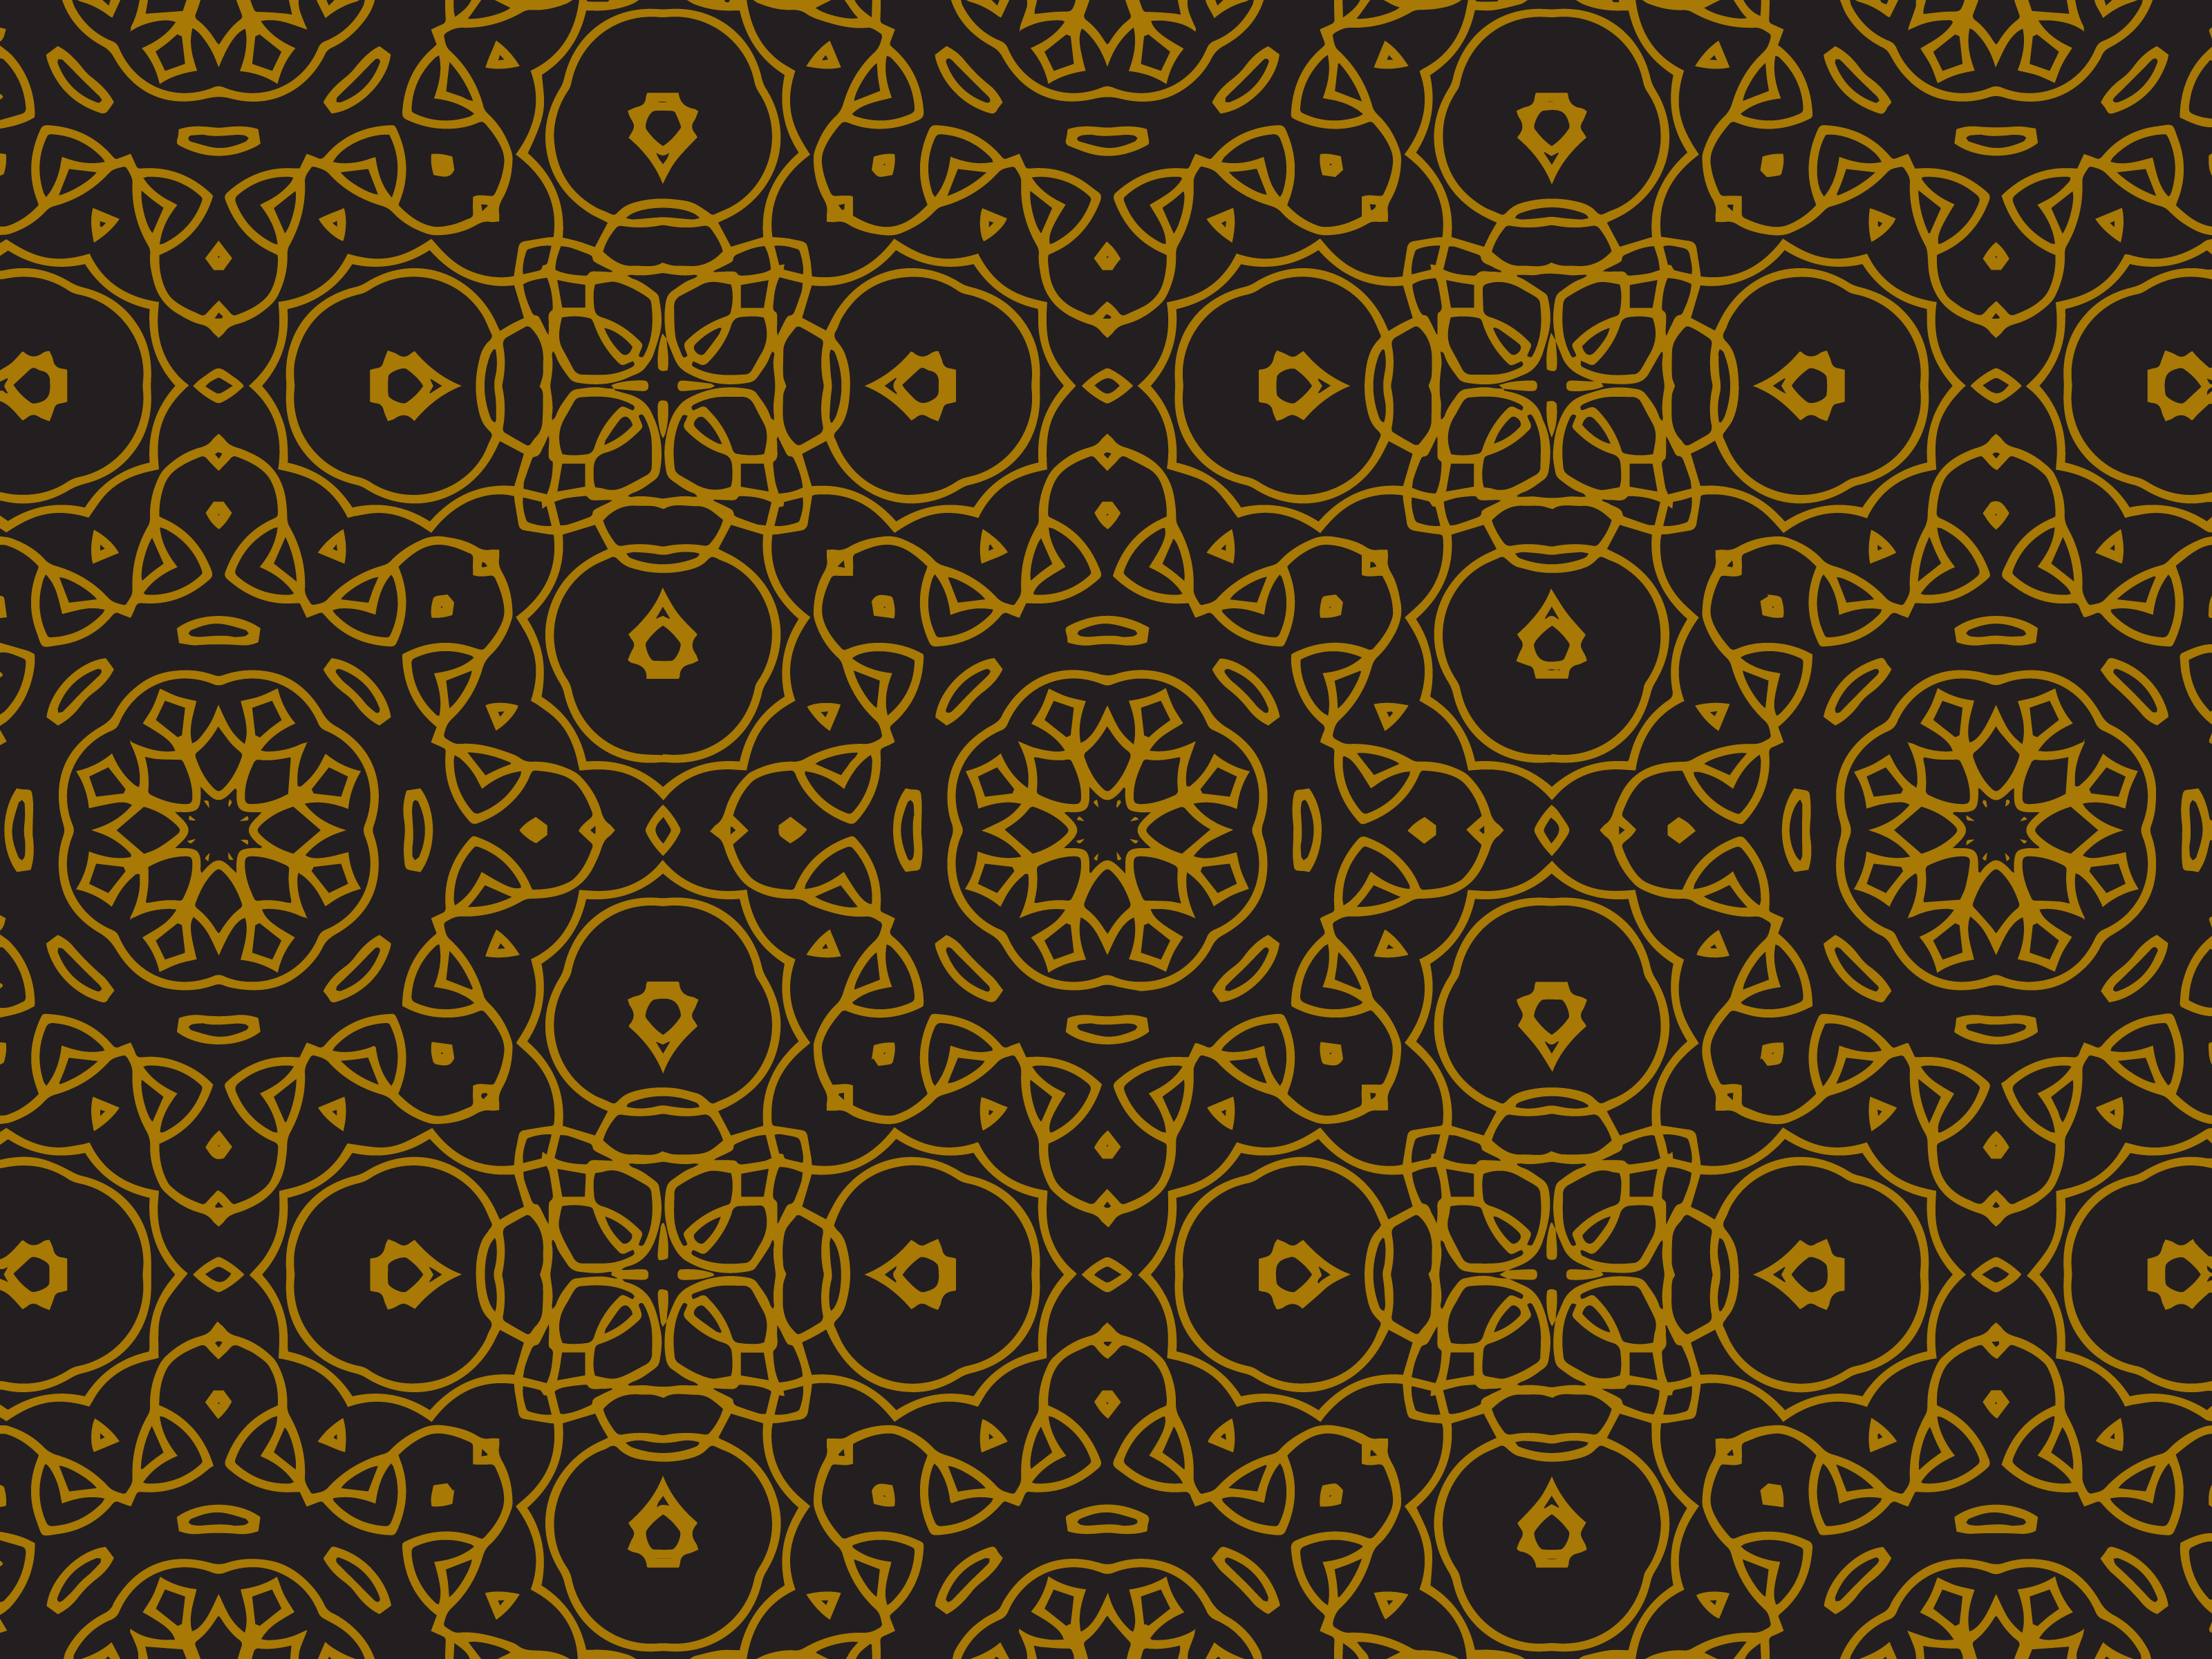 Download Free Pattern Gold Luxury Ornaments Graphic By Silkymilkycreative for Cricut Explore, Silhouette and other cutting machines.